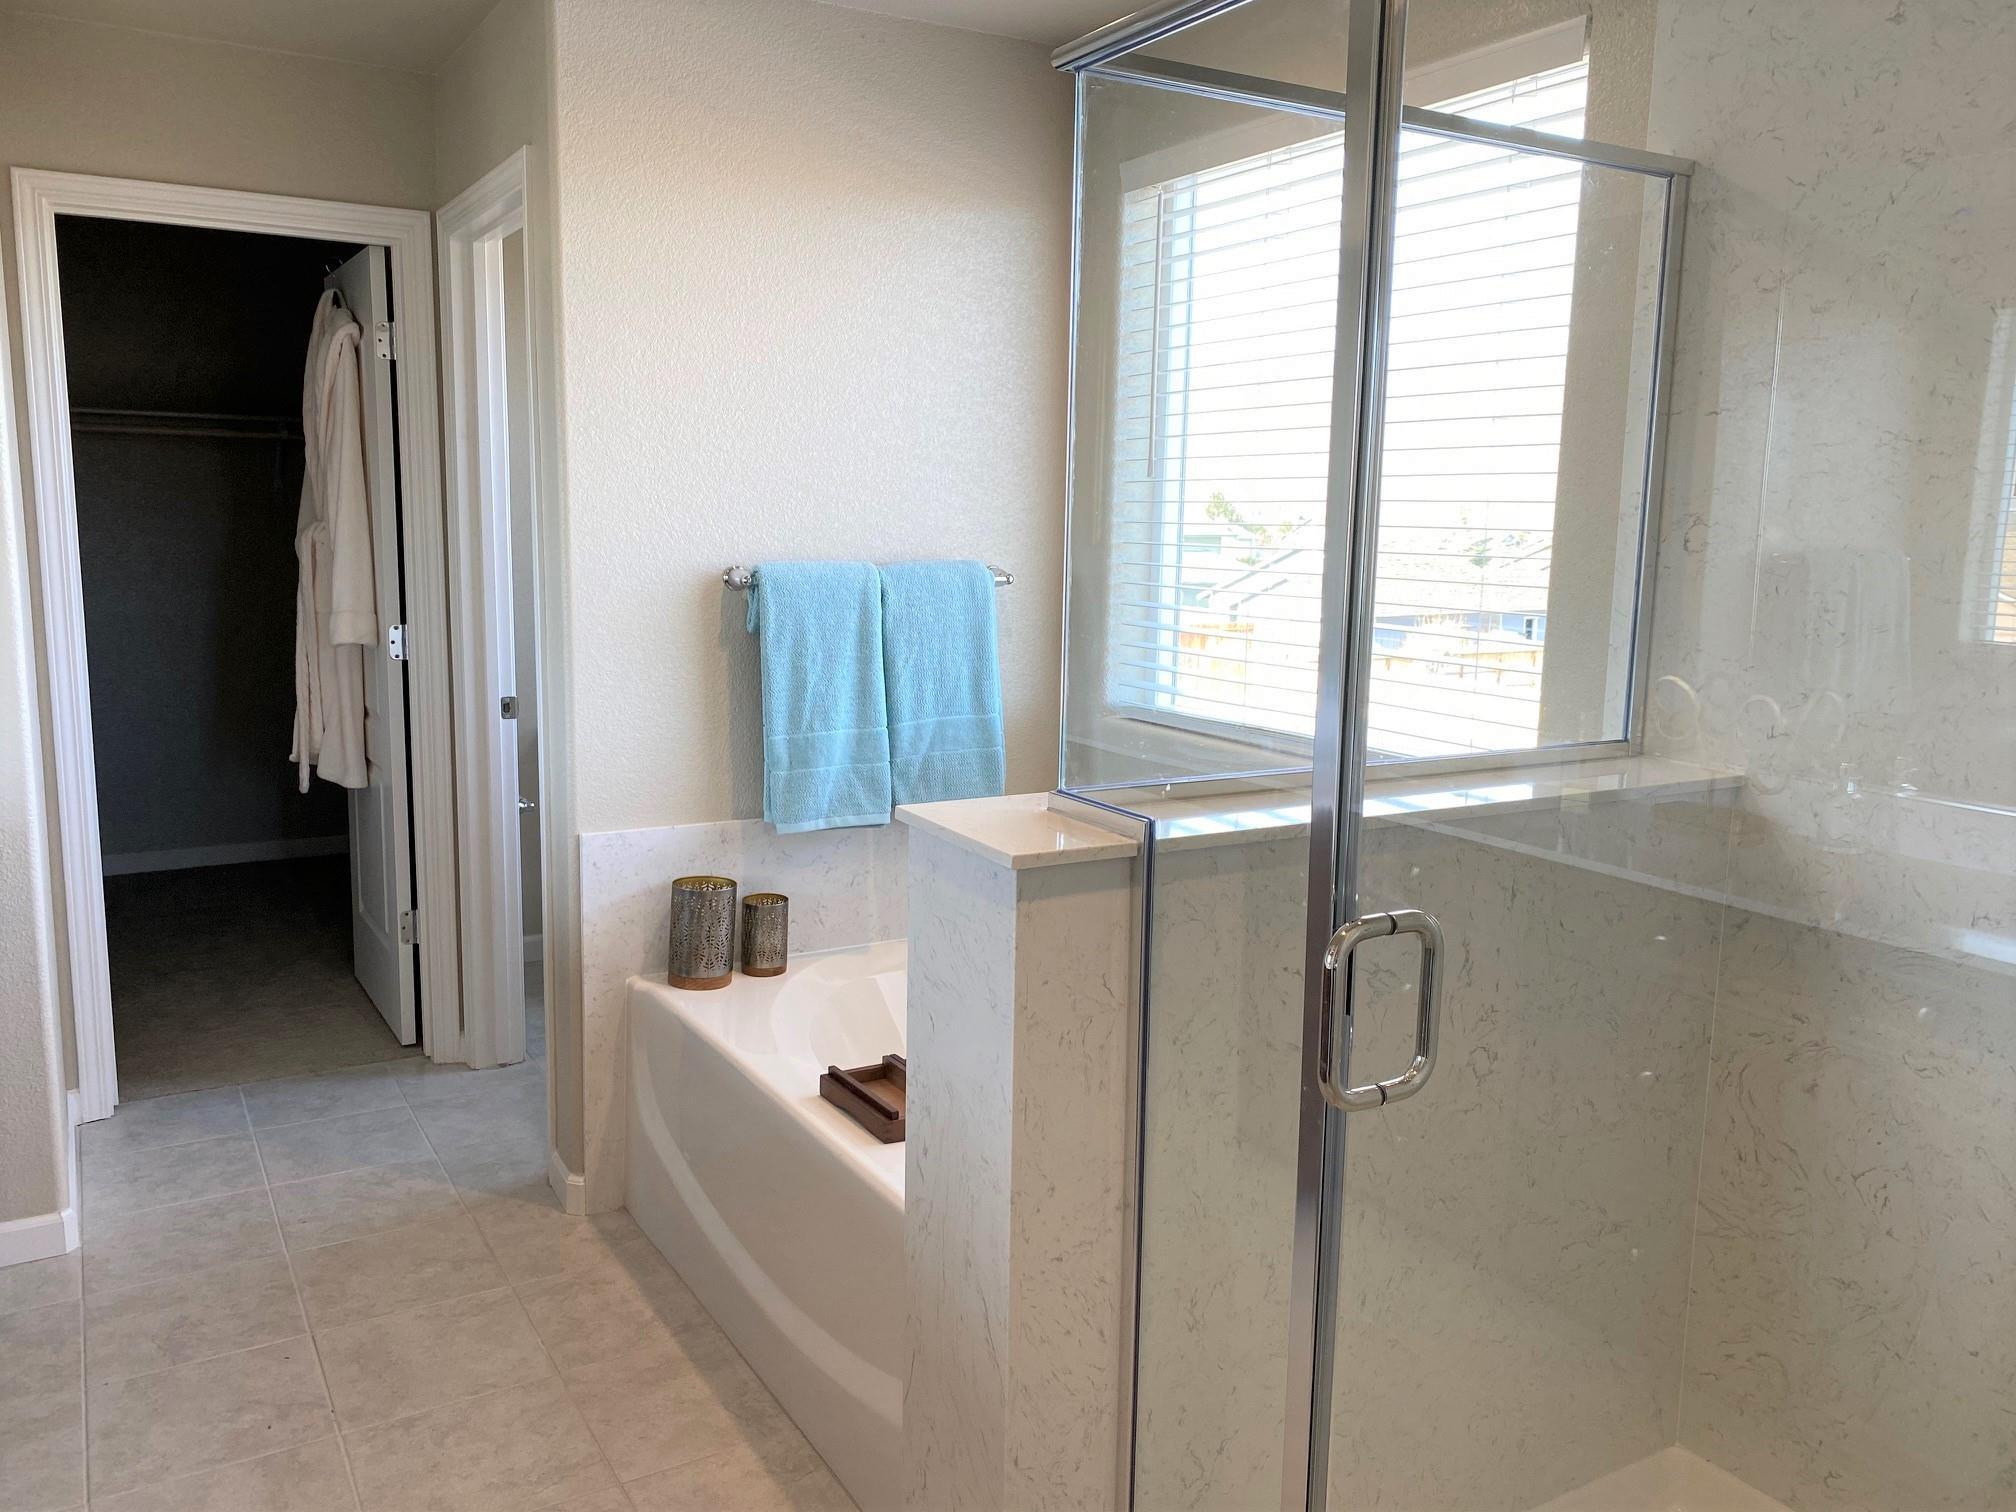 Bathroom featured in the Plan 3 By Santa Ynez Valley Construction in Reno, NV